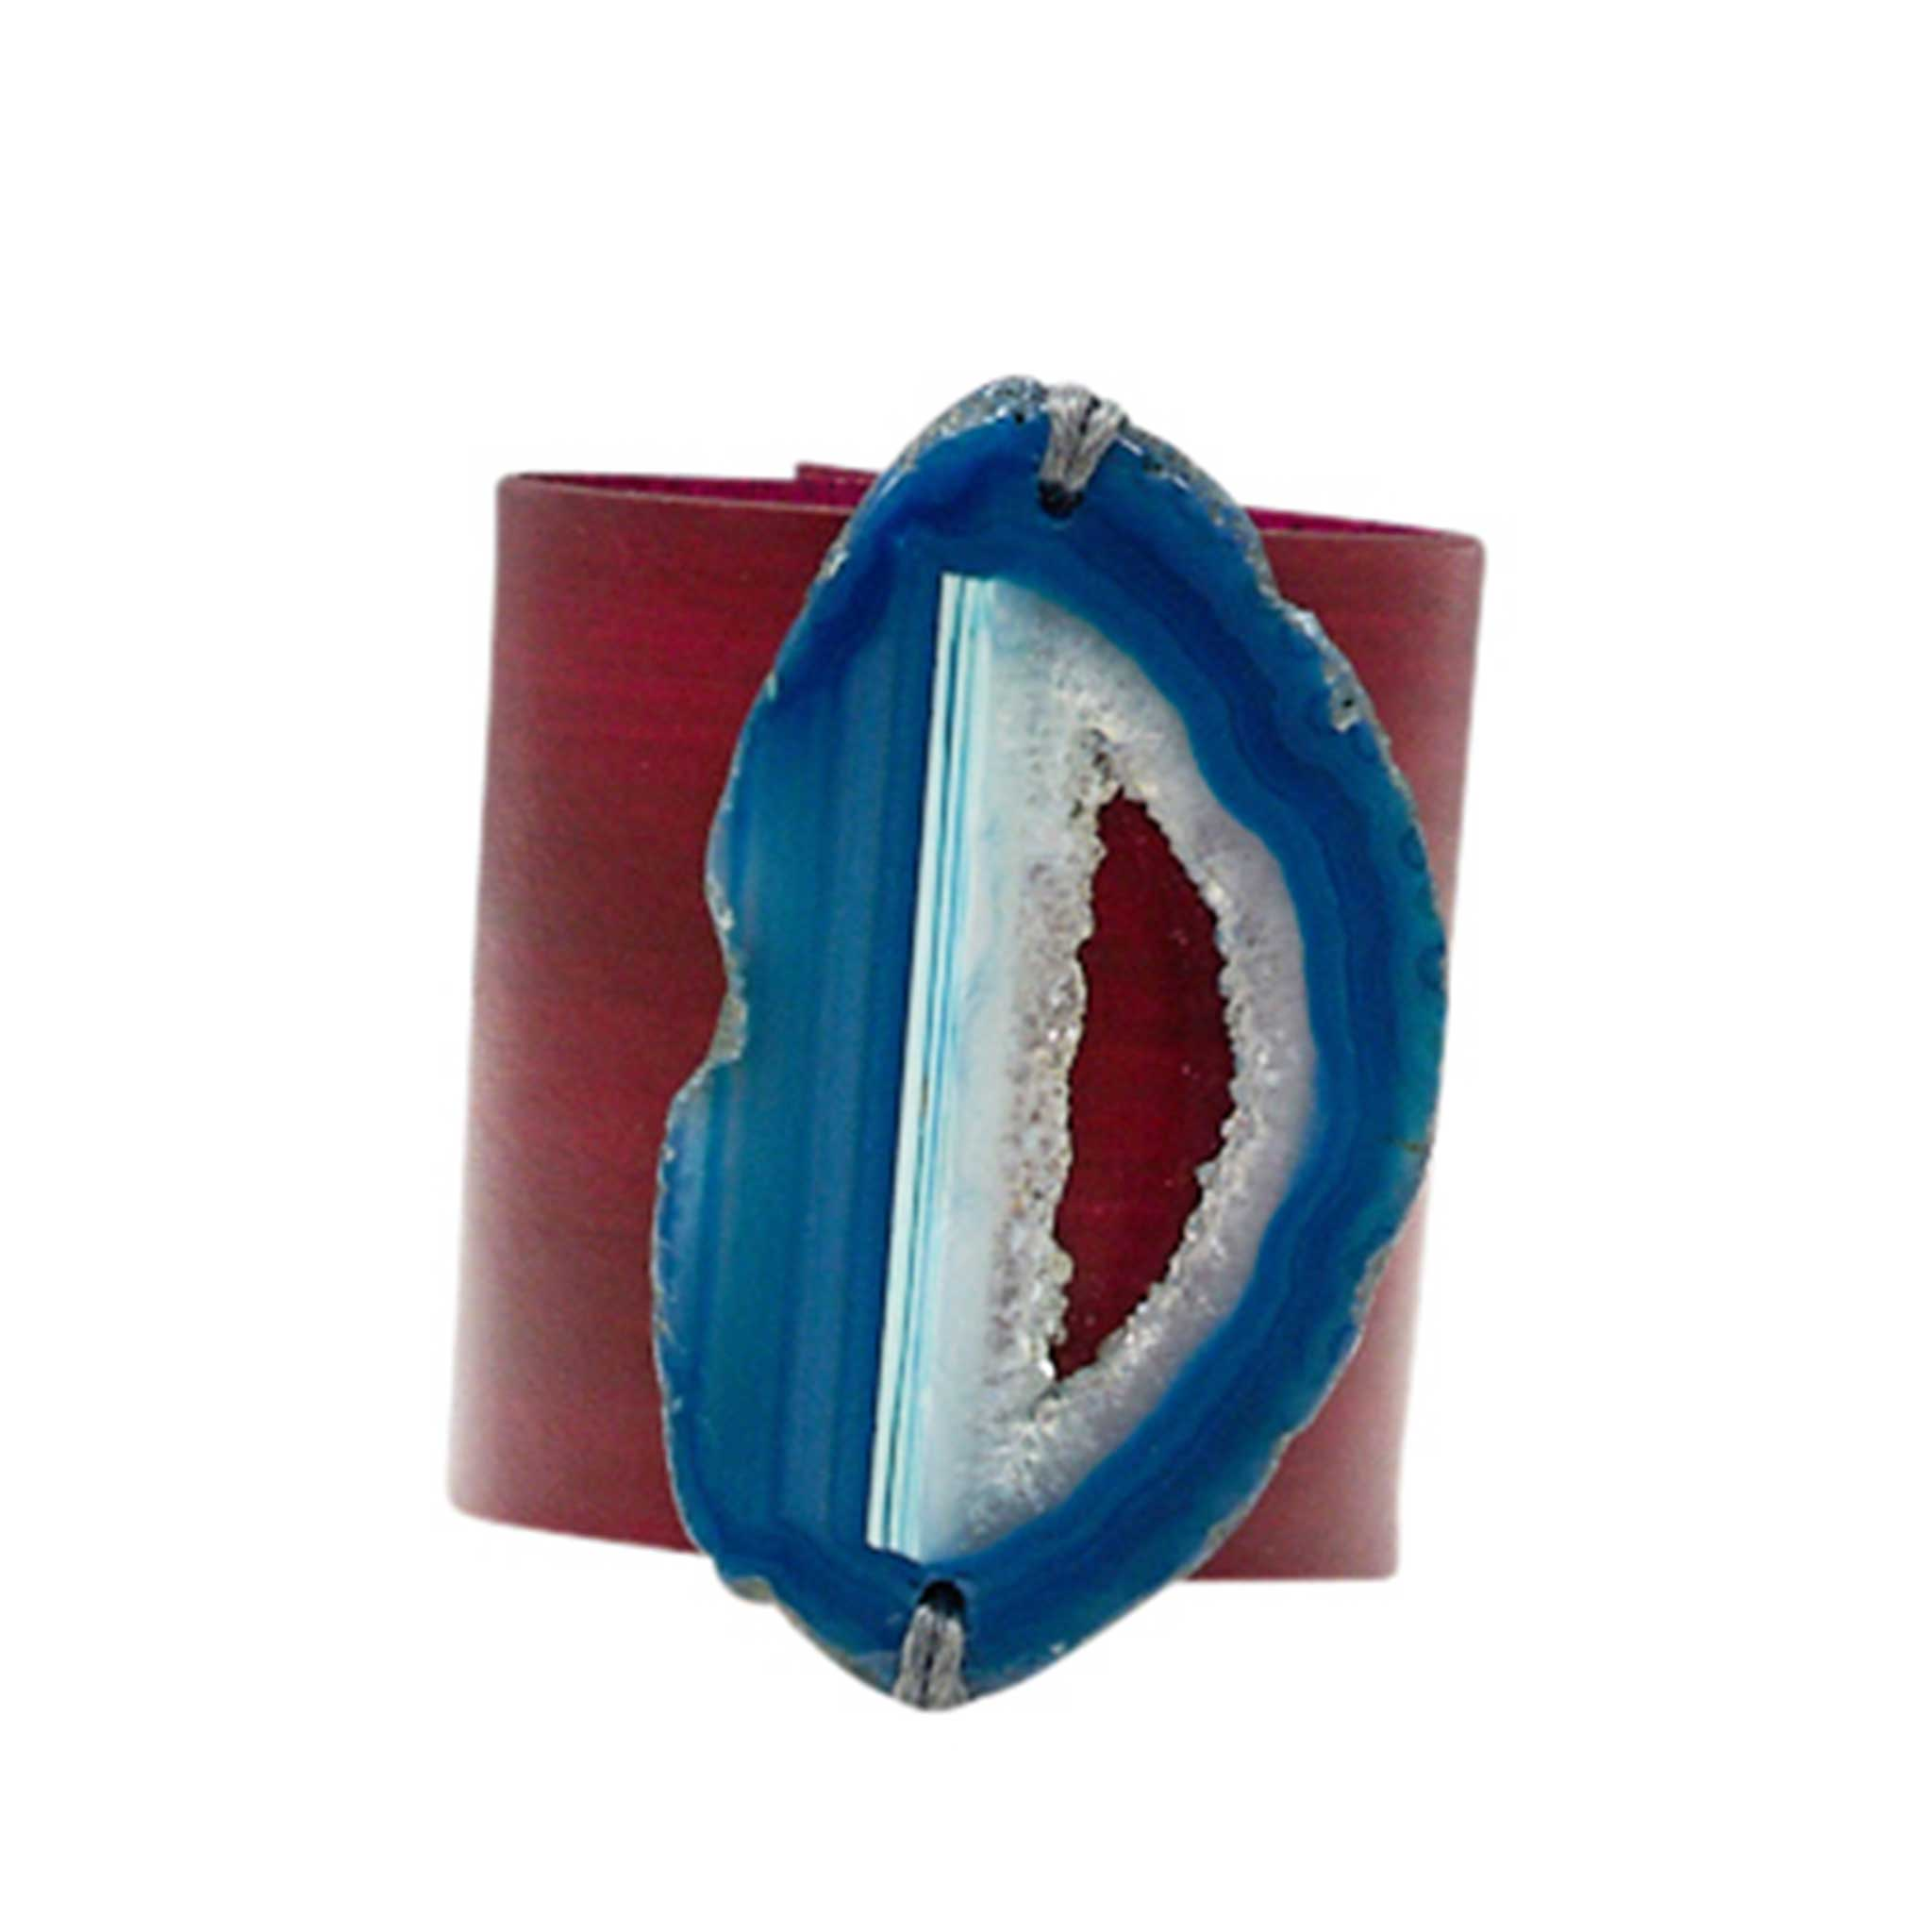 HANDCRAFTED CUFF - PINK LEATHER BLUE AGATE - 6CMPIBL1.1